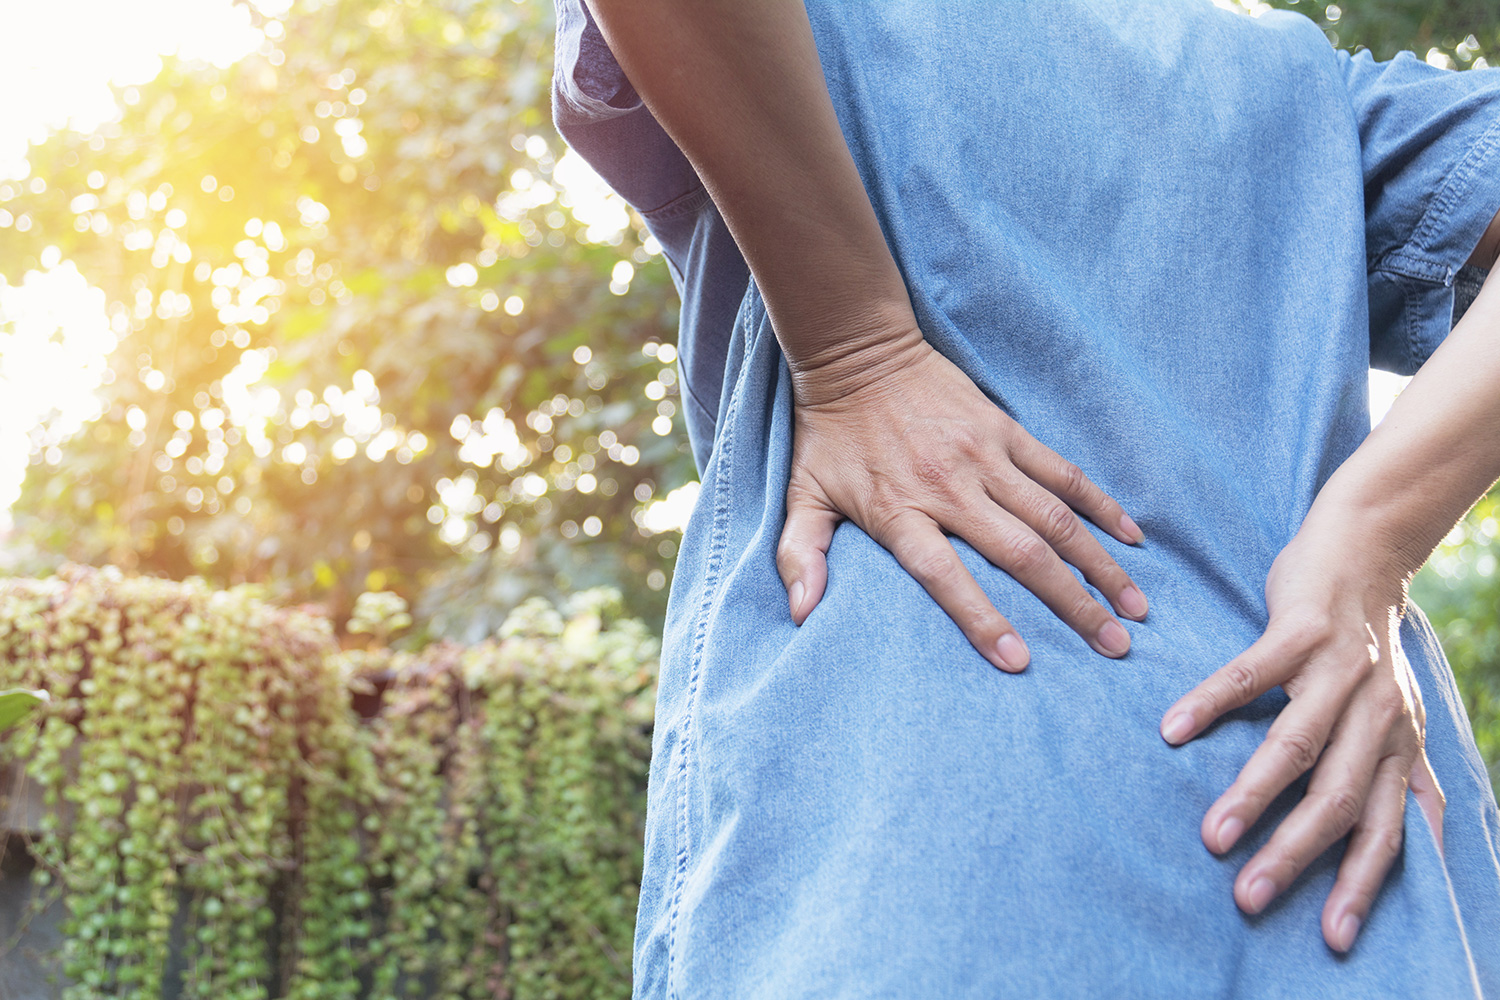 When Back Pain Means Kidney Problems